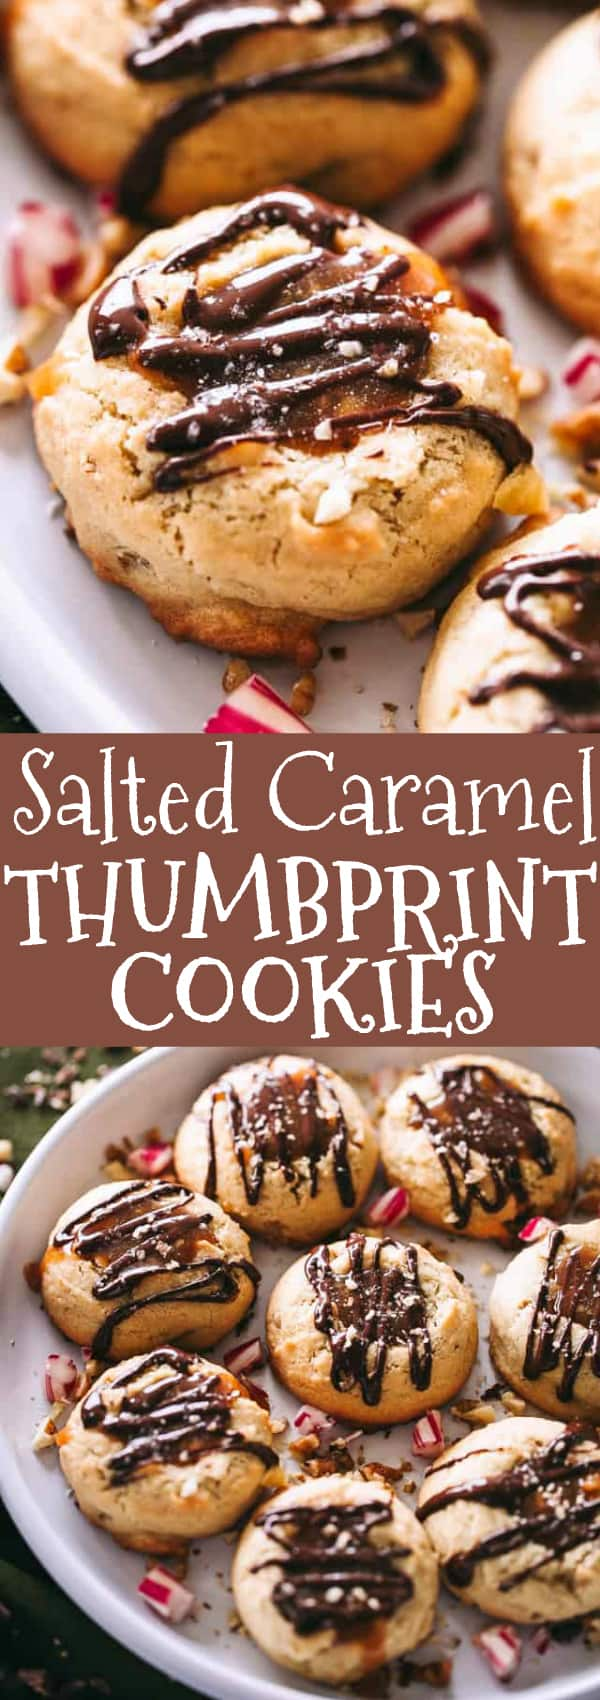 Salted Caramel Thumbprint Cookies - Thick, soft, chewy, and gooey Thumbprint Cookies filled with caramel, drizzled with chocolate, and sprinkled with salt. #thumbprintcookies #caramel #chocolatecookies #chocolaterecipes #christmascookies #dessertrecipes #christmas